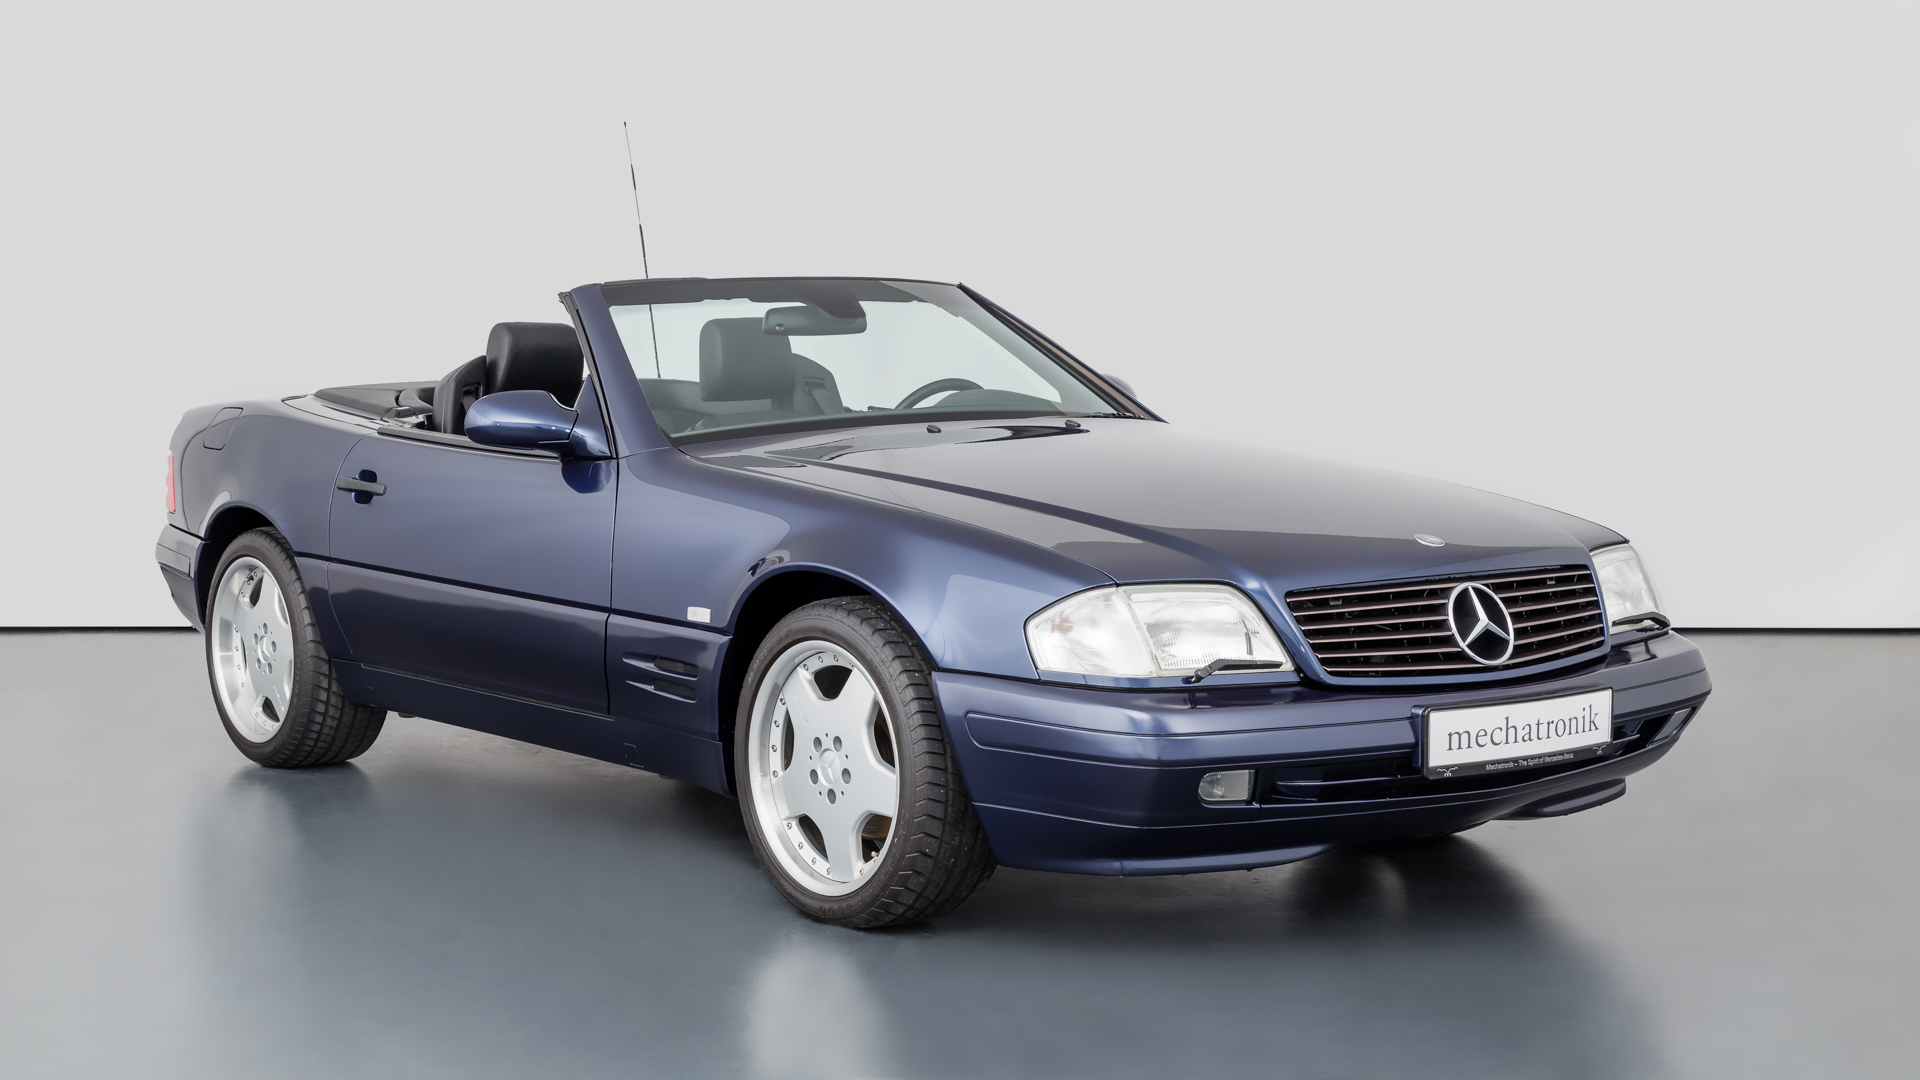 Mercedes-Benz R 129 280 SL Roadster